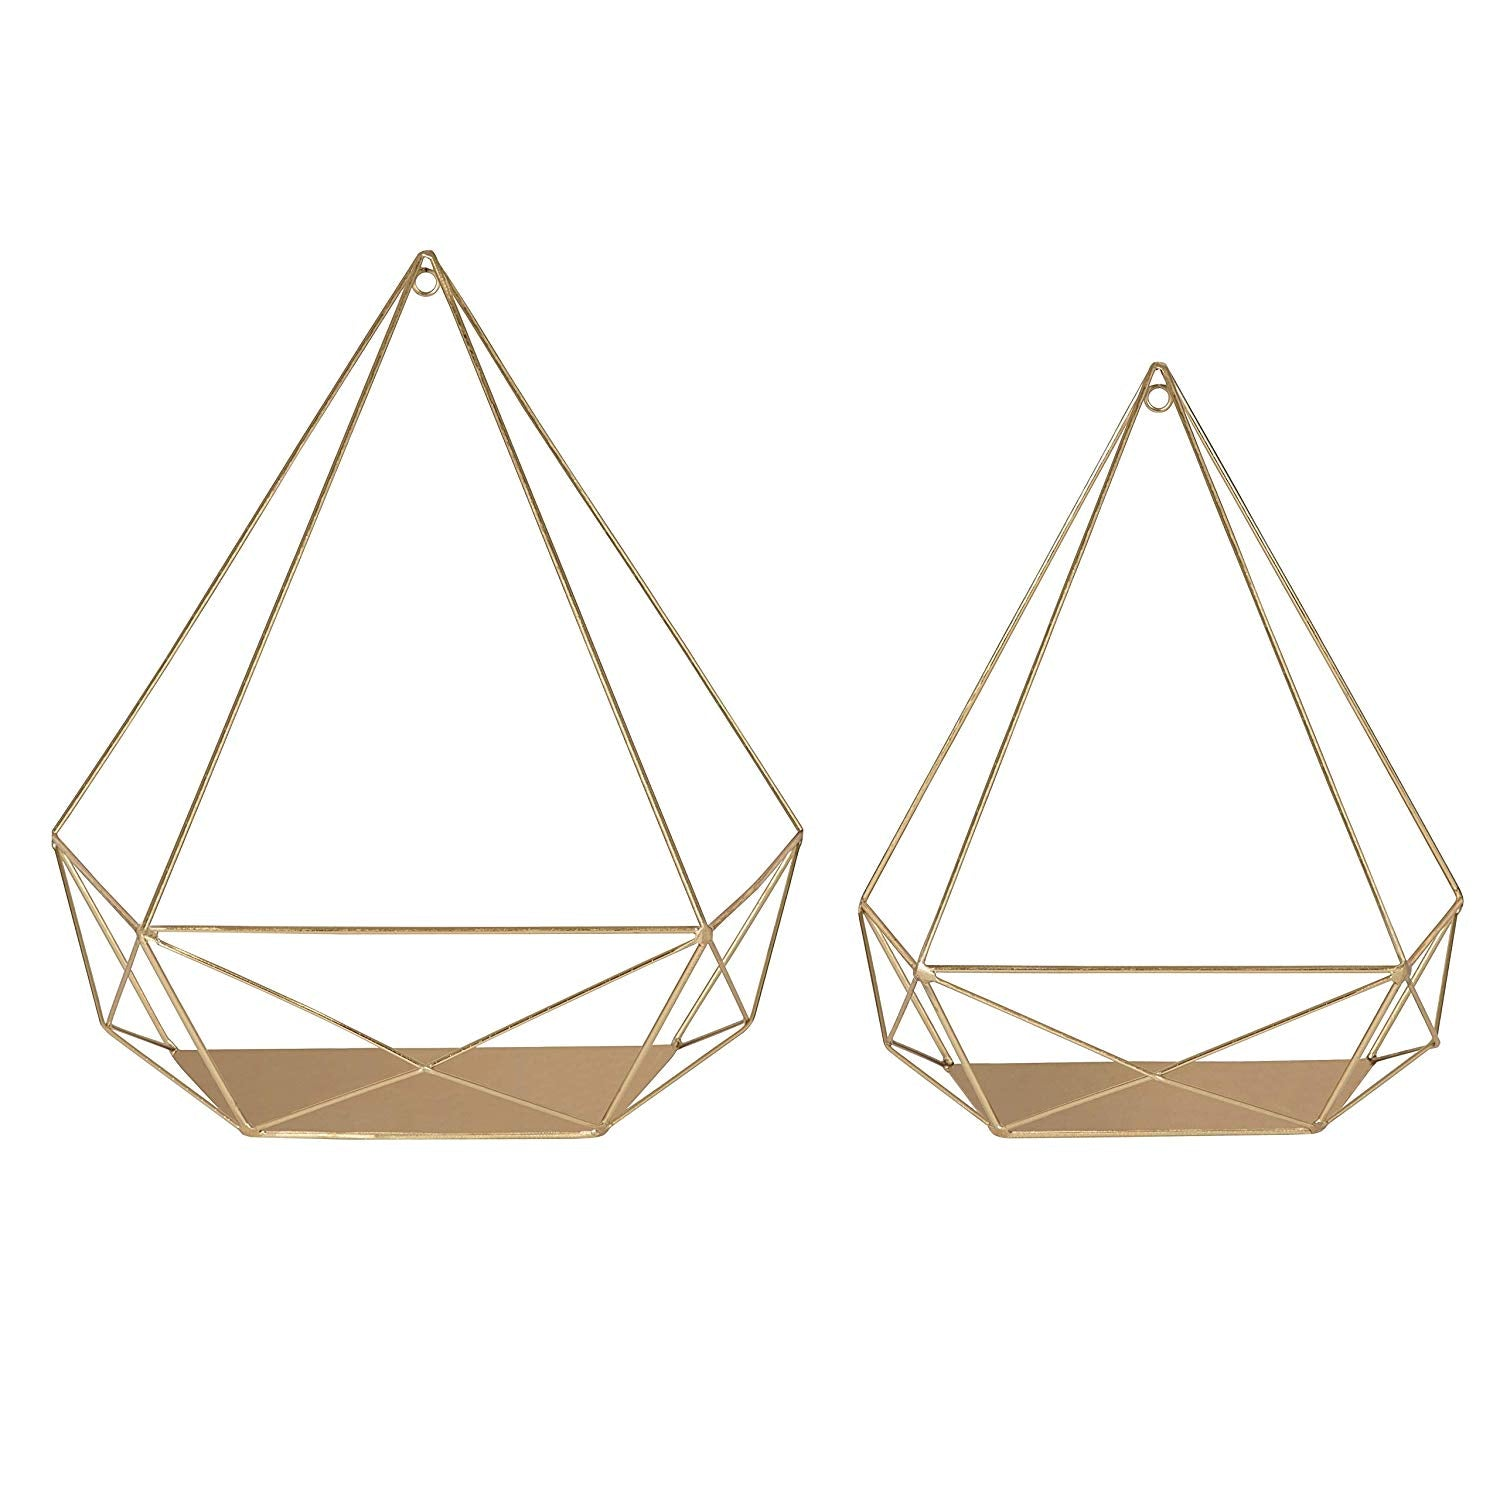 Gold Cube Floating Shelves Set 2 Decorative Wall Mounted Geometric Accent Shelves Indoor Wall Shelves Pillar Candle Holder Satin Finish Painted Modern